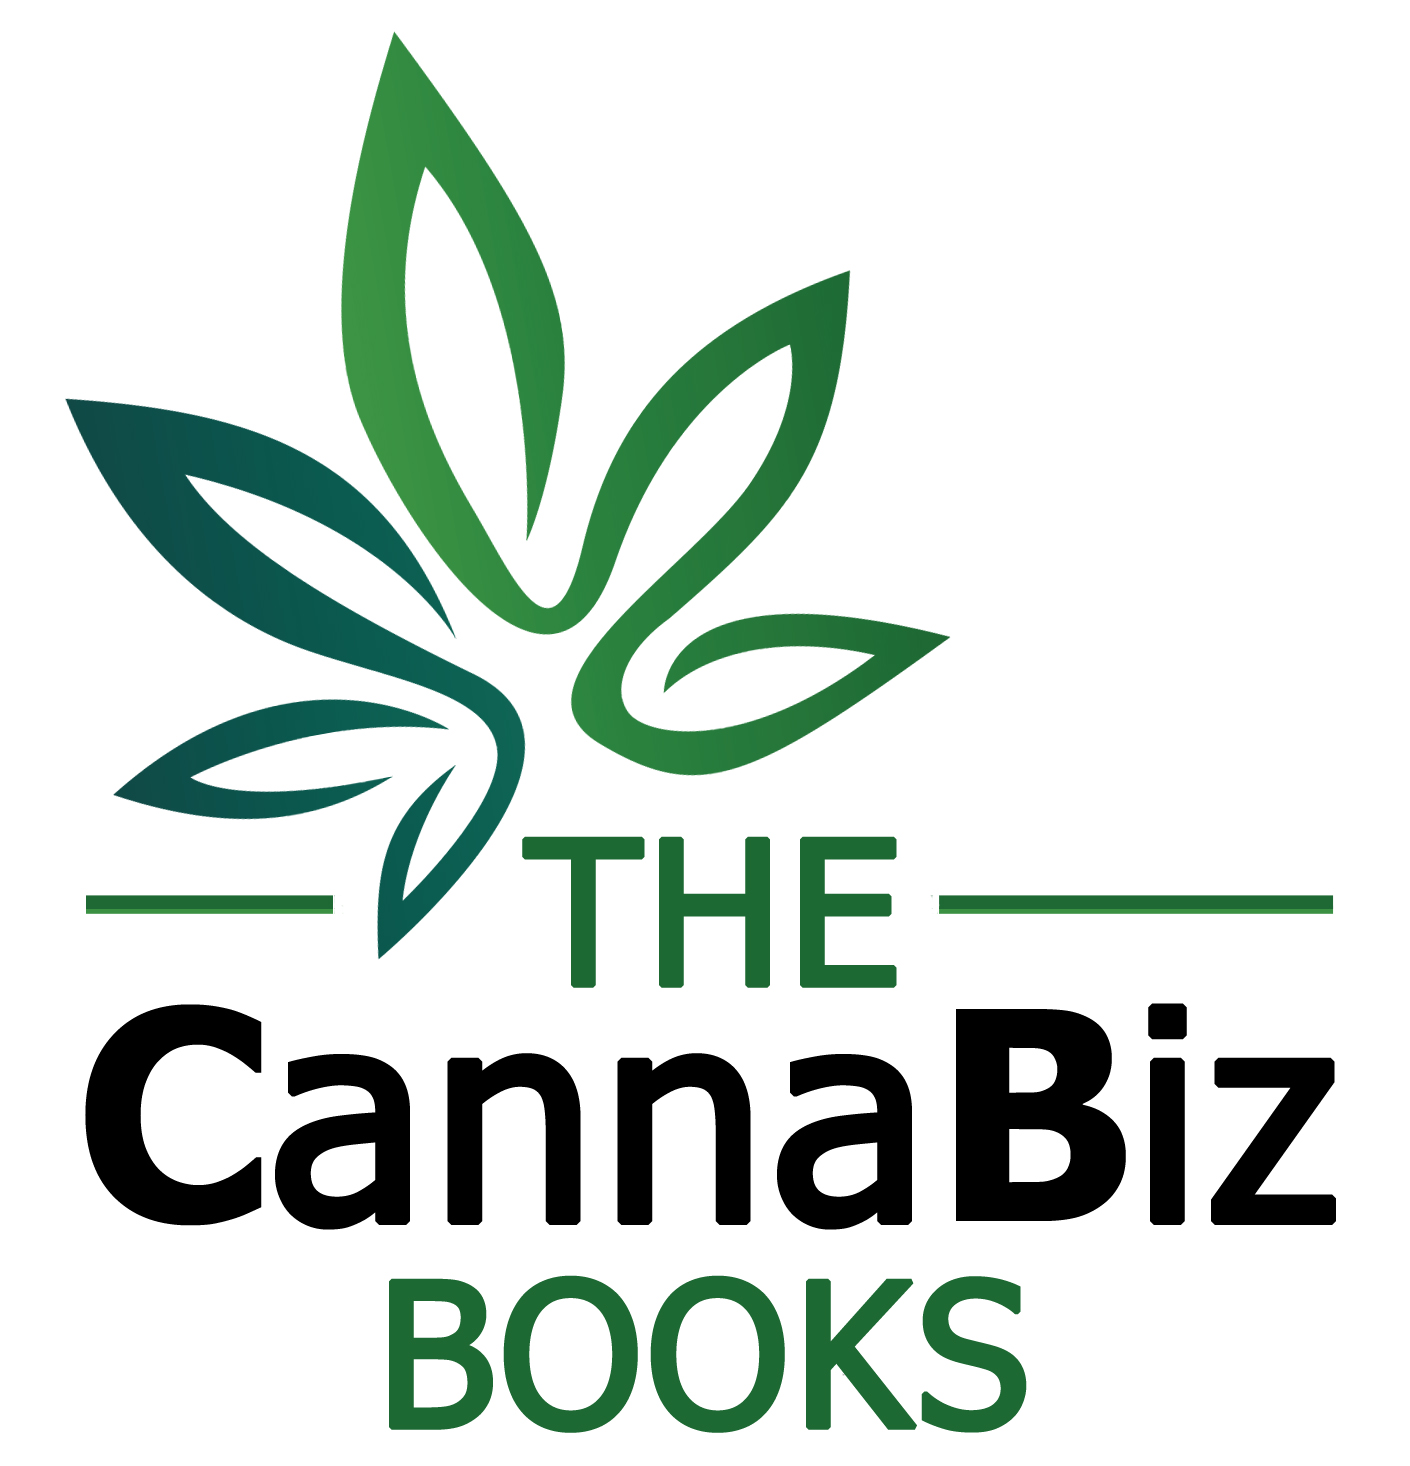 The CannaBiz Books